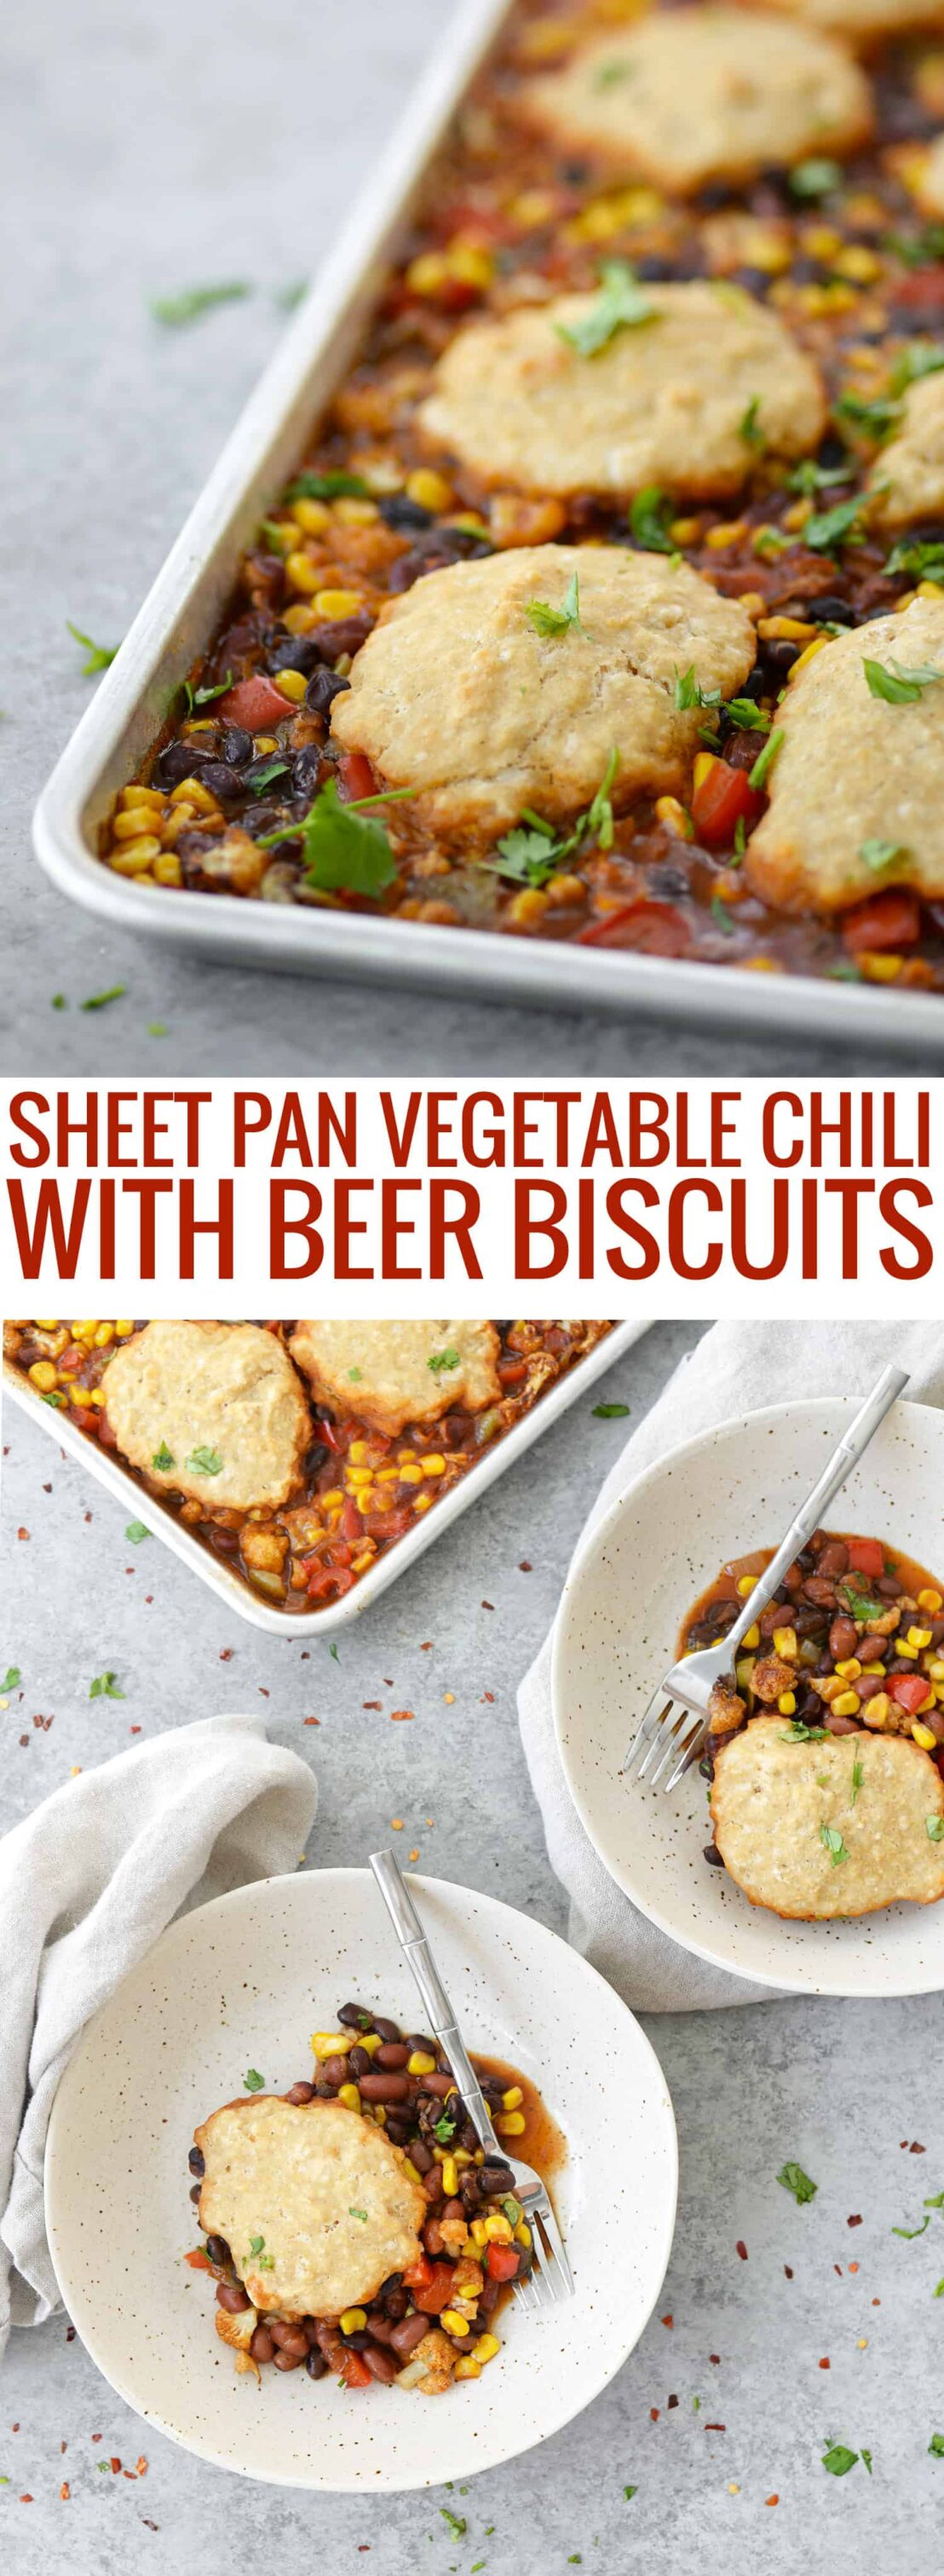 Sheet Pan Vegetable Chili with Beer Biscuits! You will love this all-in-one vegan sheet pan dinner. Roasted vegetable chili topped with whole wheat beer biscuits.   www.delishknowledge.com